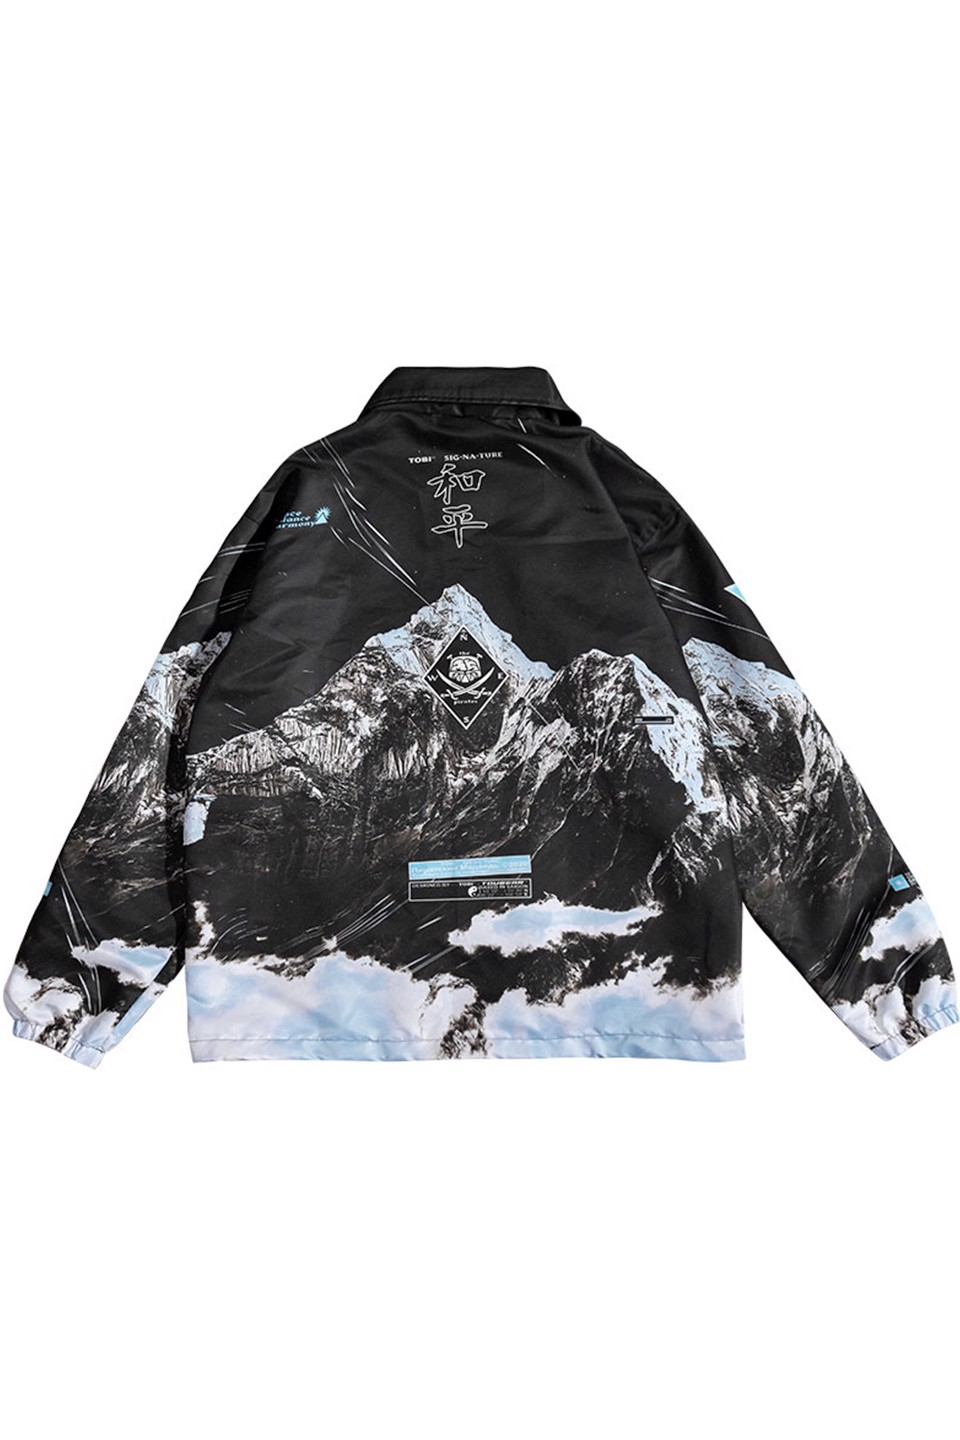 Peace Pirate Jacket - Black